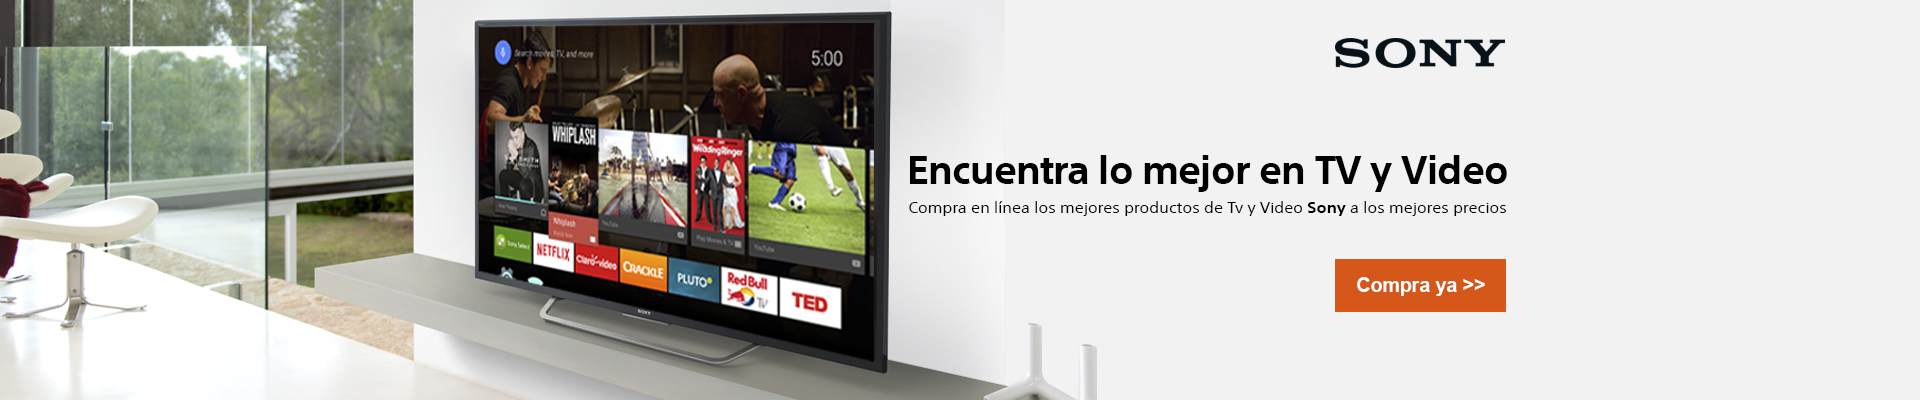 CAT - TV SONY JUNIO